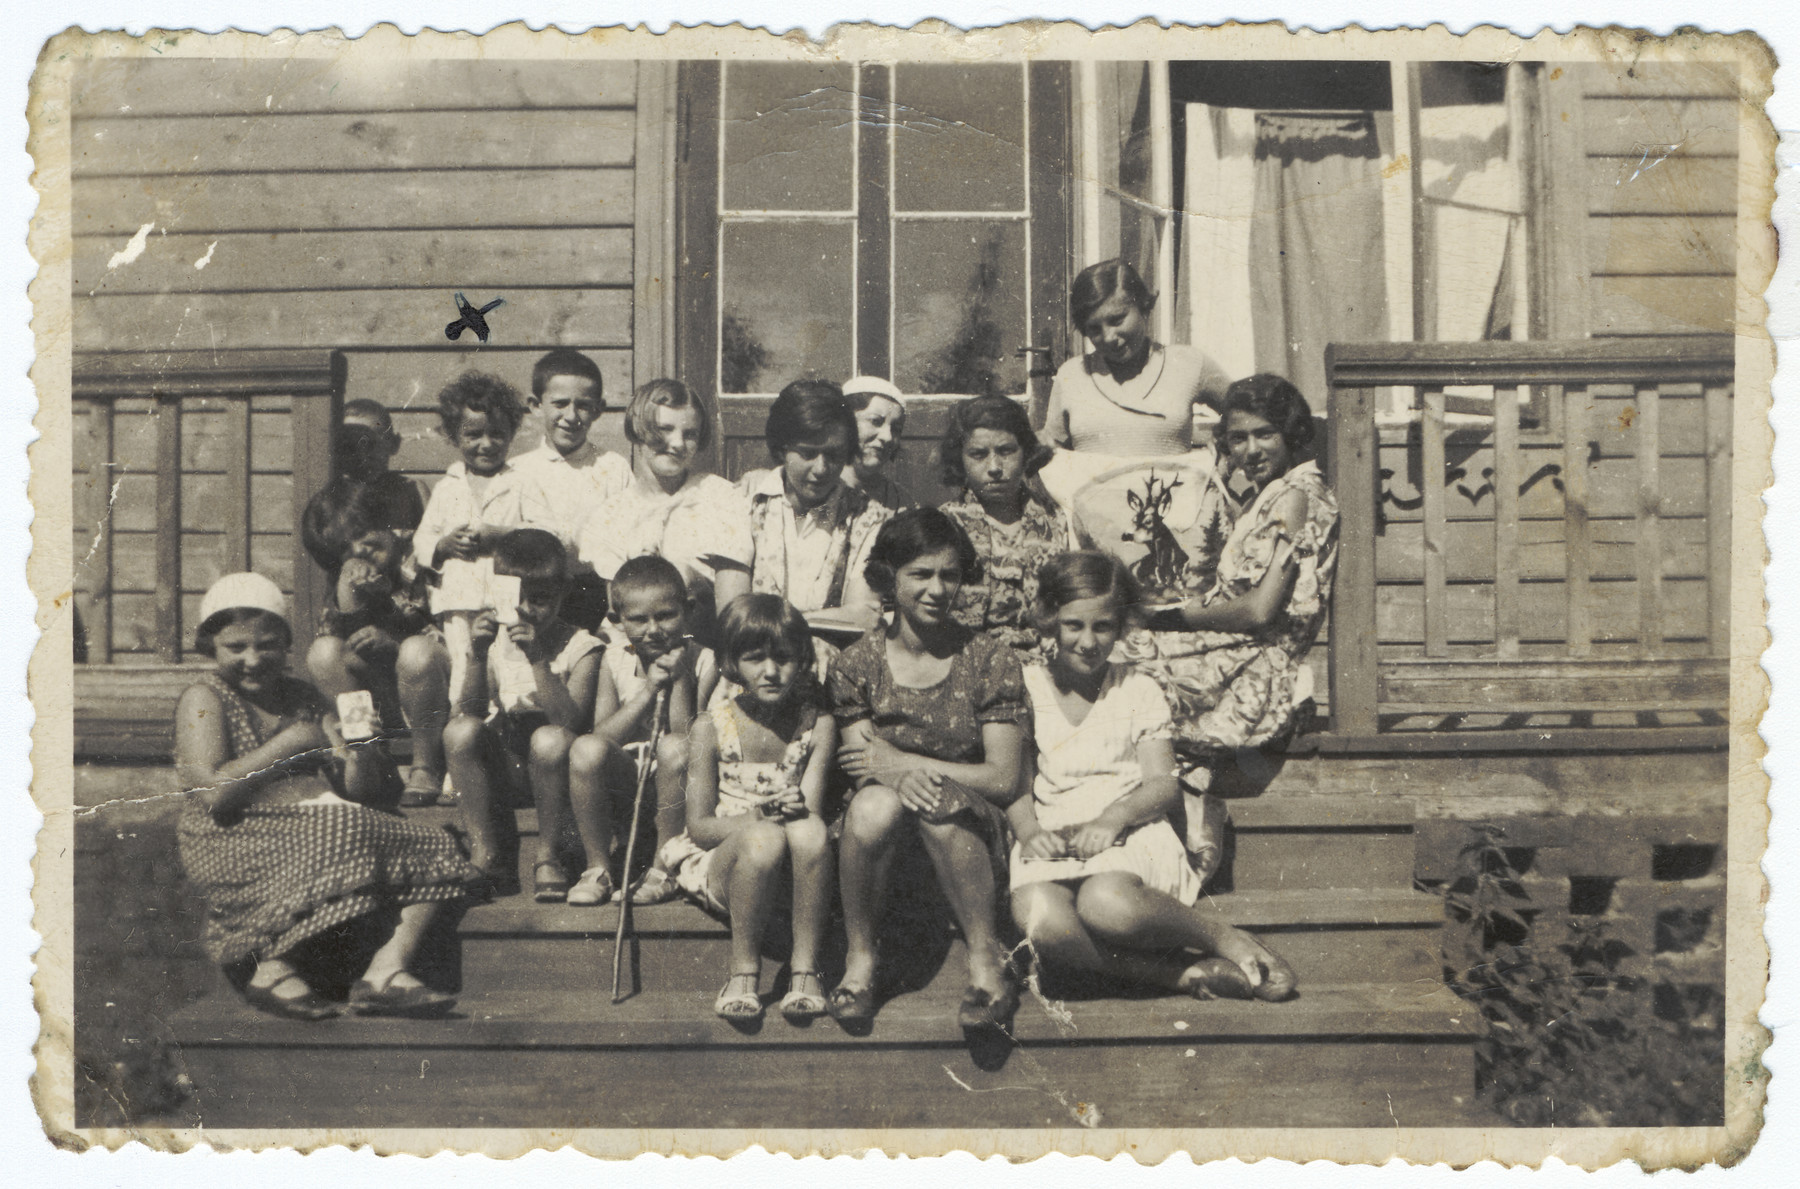 A large group of Lithuanian Jews pose on the steps of a wooden building in a summer colony in Palanga.  Pictured at the top left under the x is Rina Ilgovsky.